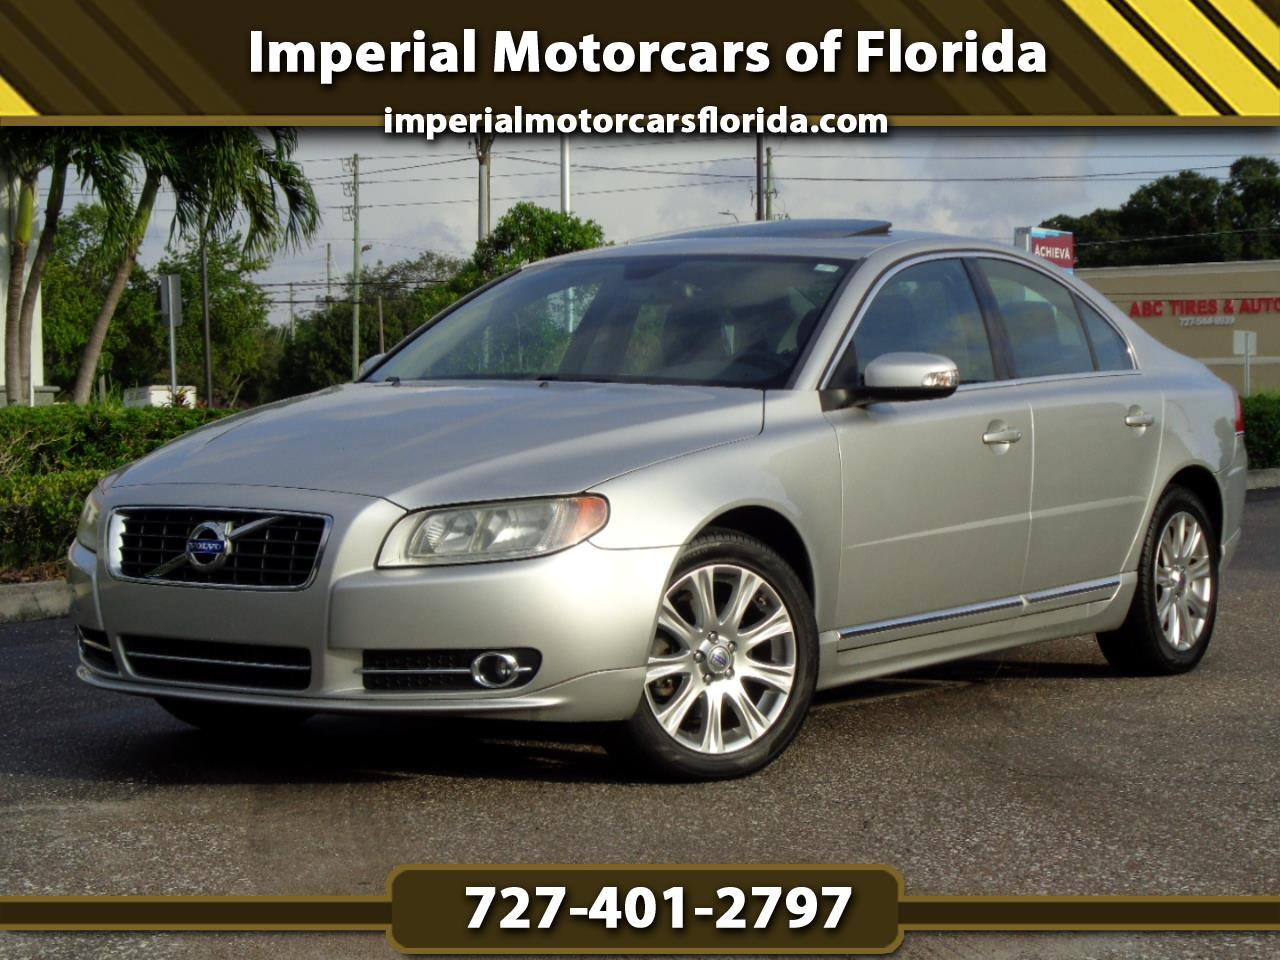 Volvo S80 4dr Sdn I6 FWD 2010